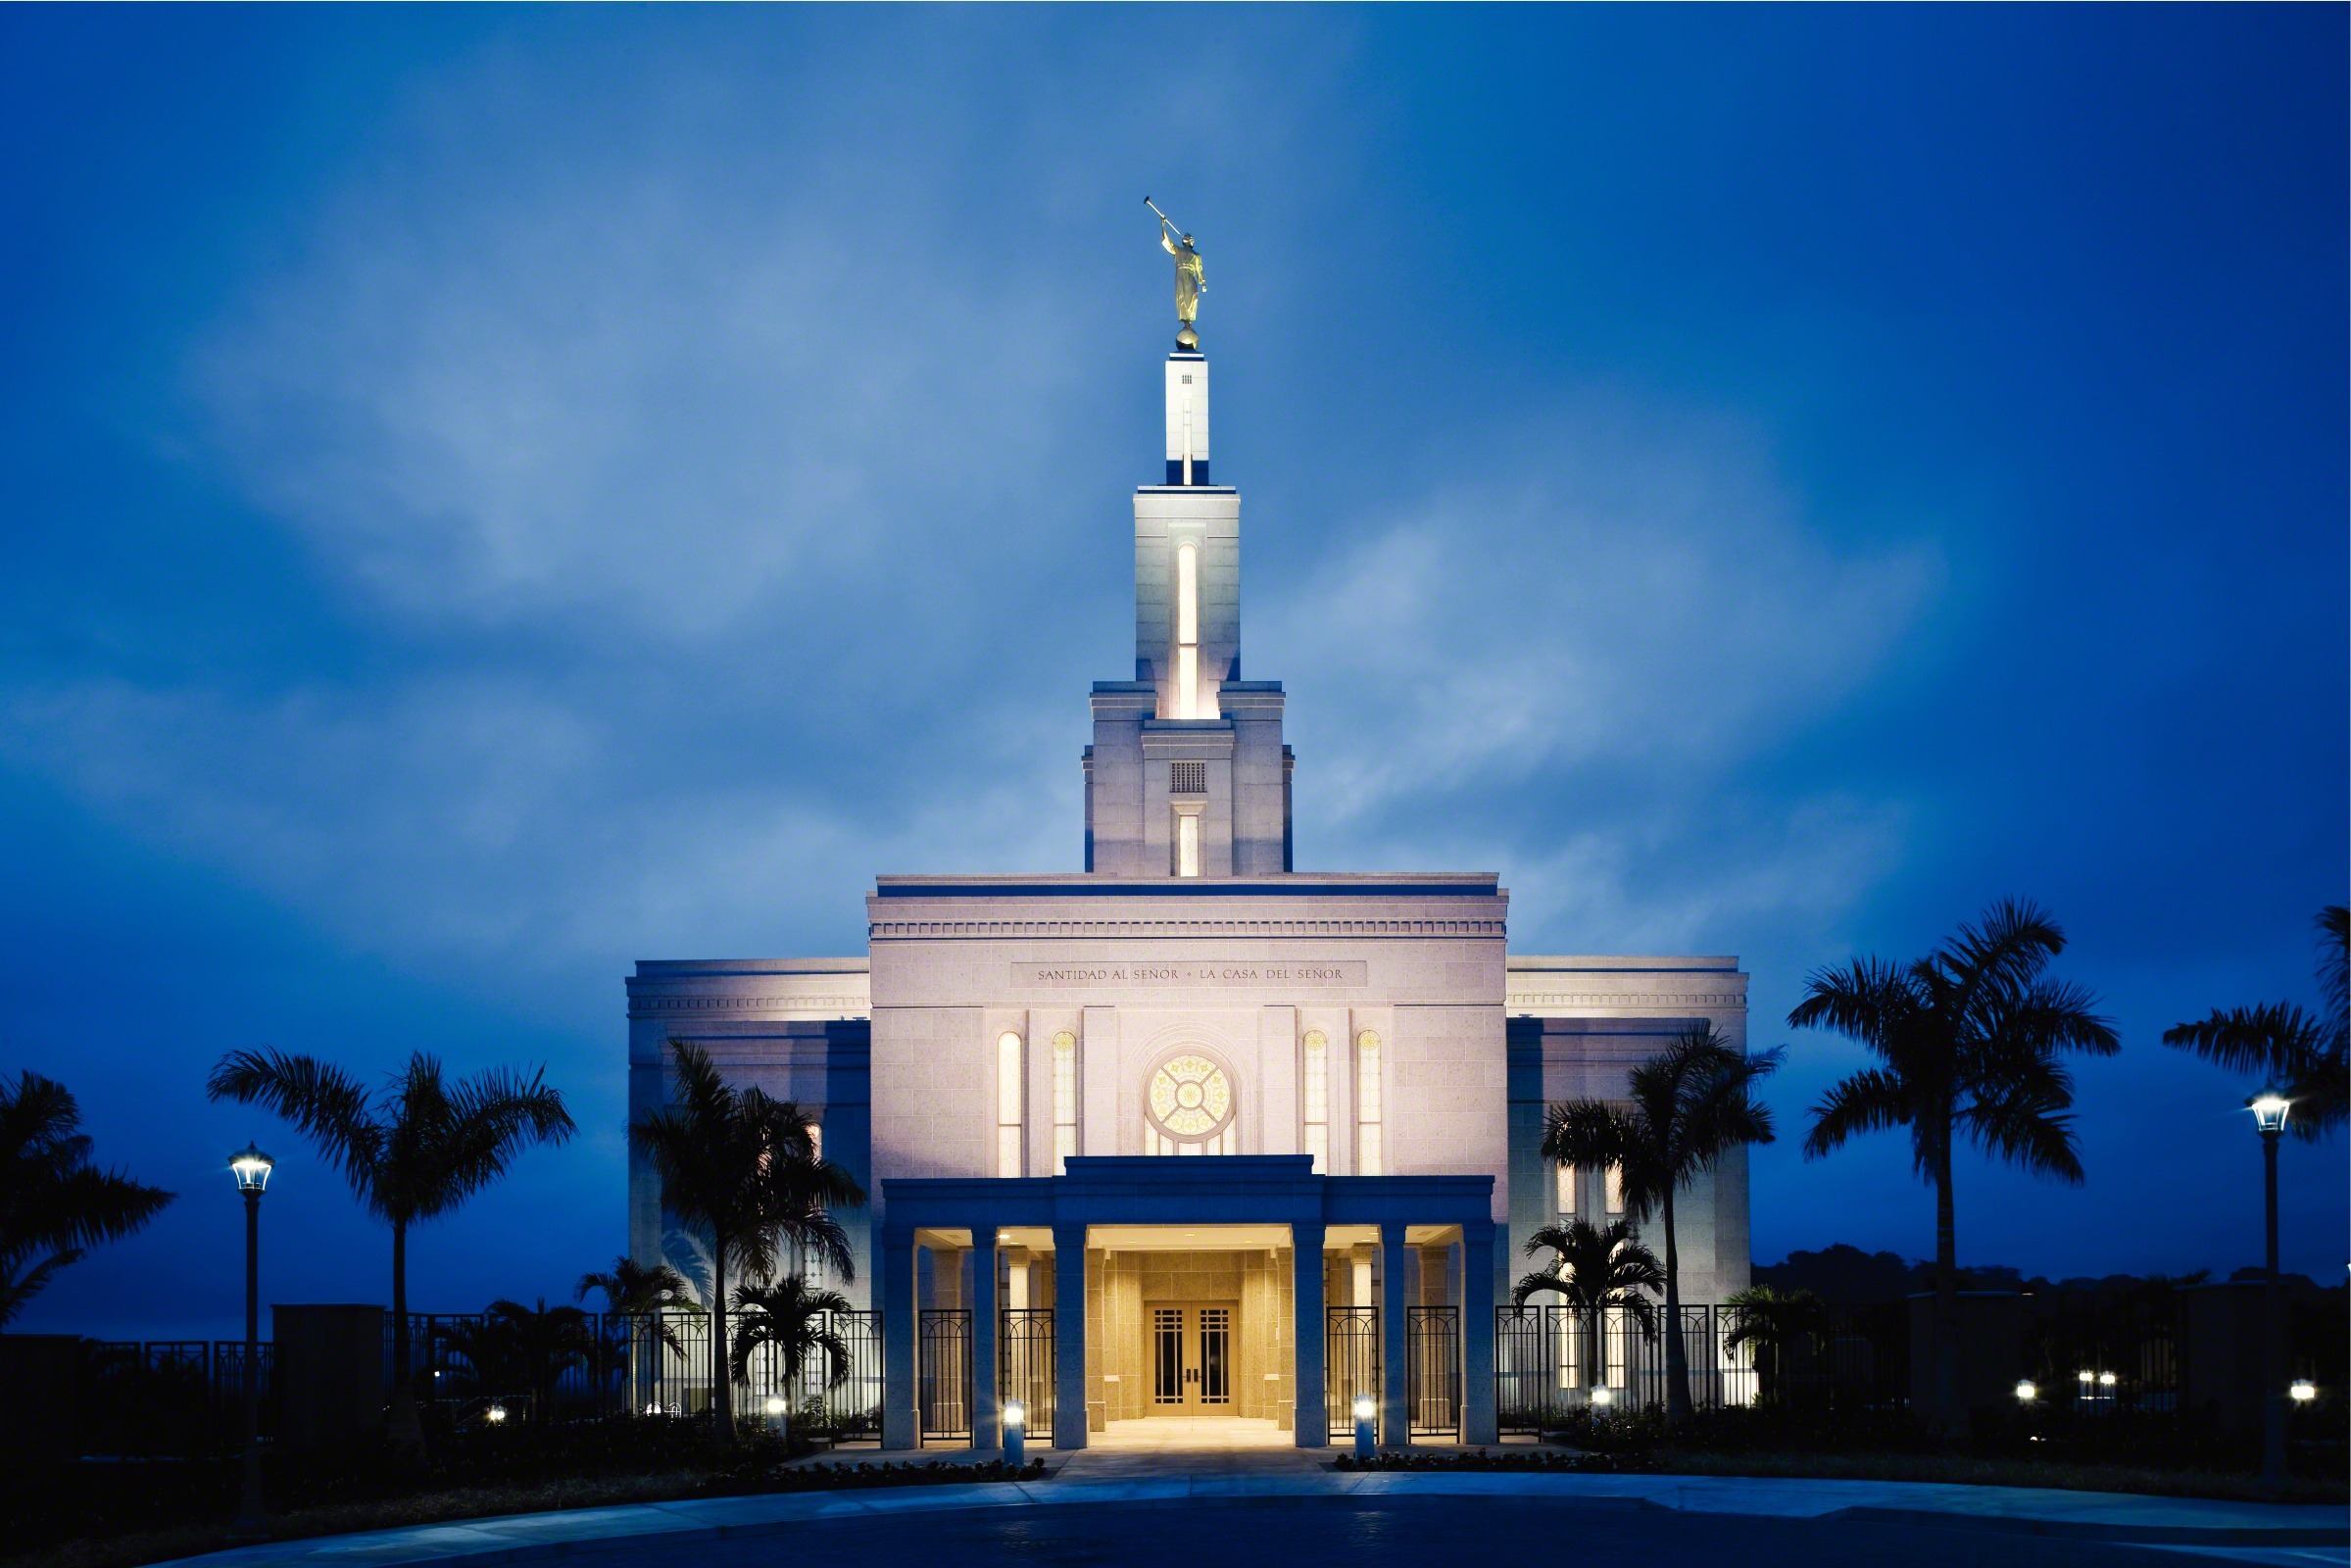 The Church of Jesus Christ of Latter-Day Saints | 5622 S Montana Ave, Caldwell, ID, 83607 | +1 (208) 453-9118